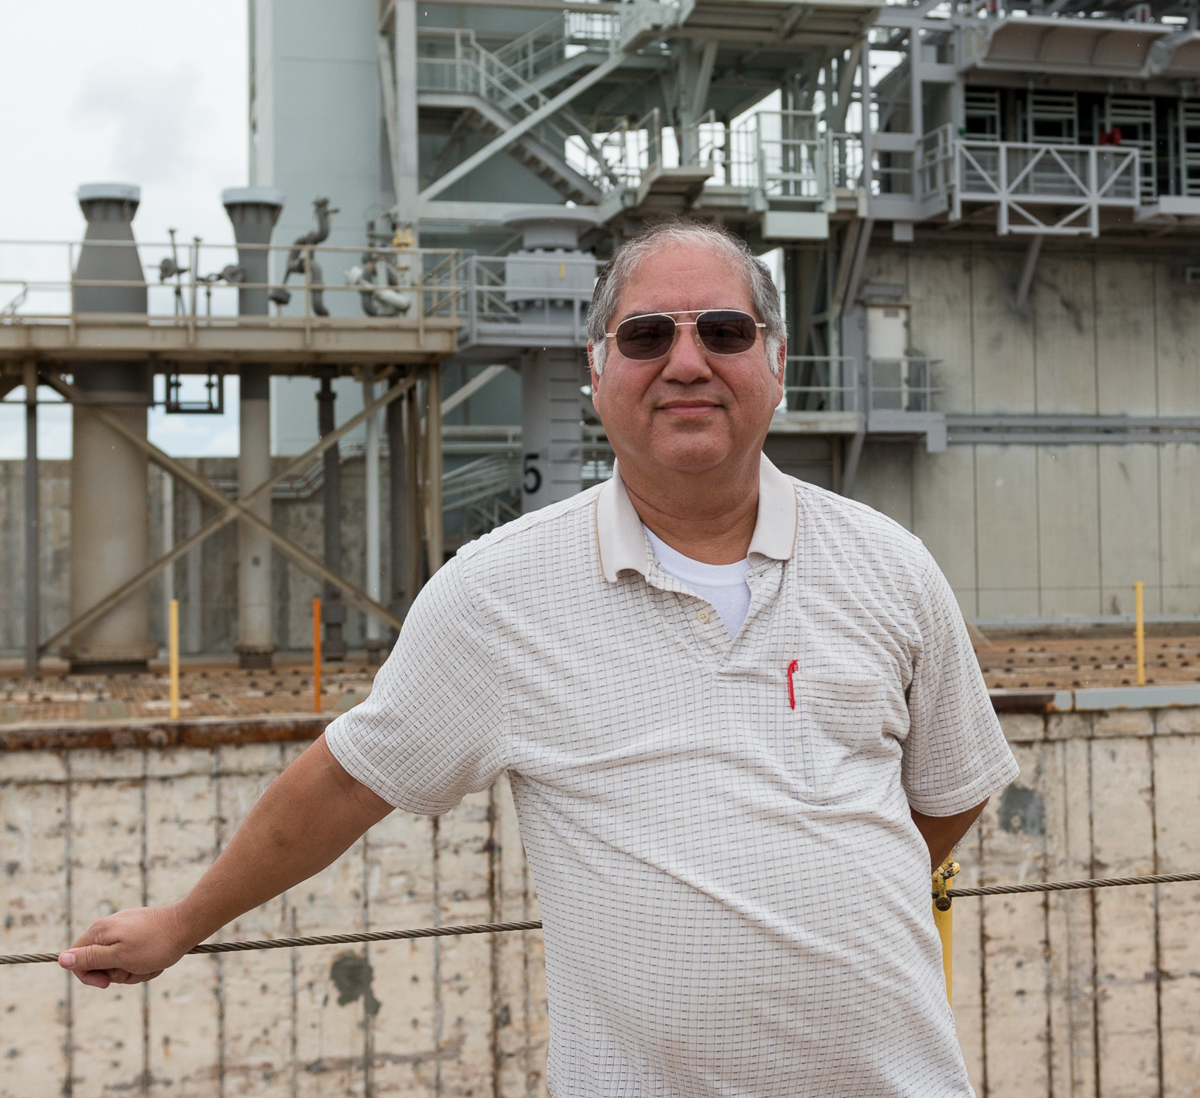 José  was our guide on the launch pad, he is in charge of retrofitting it back to the clean pad functionality.